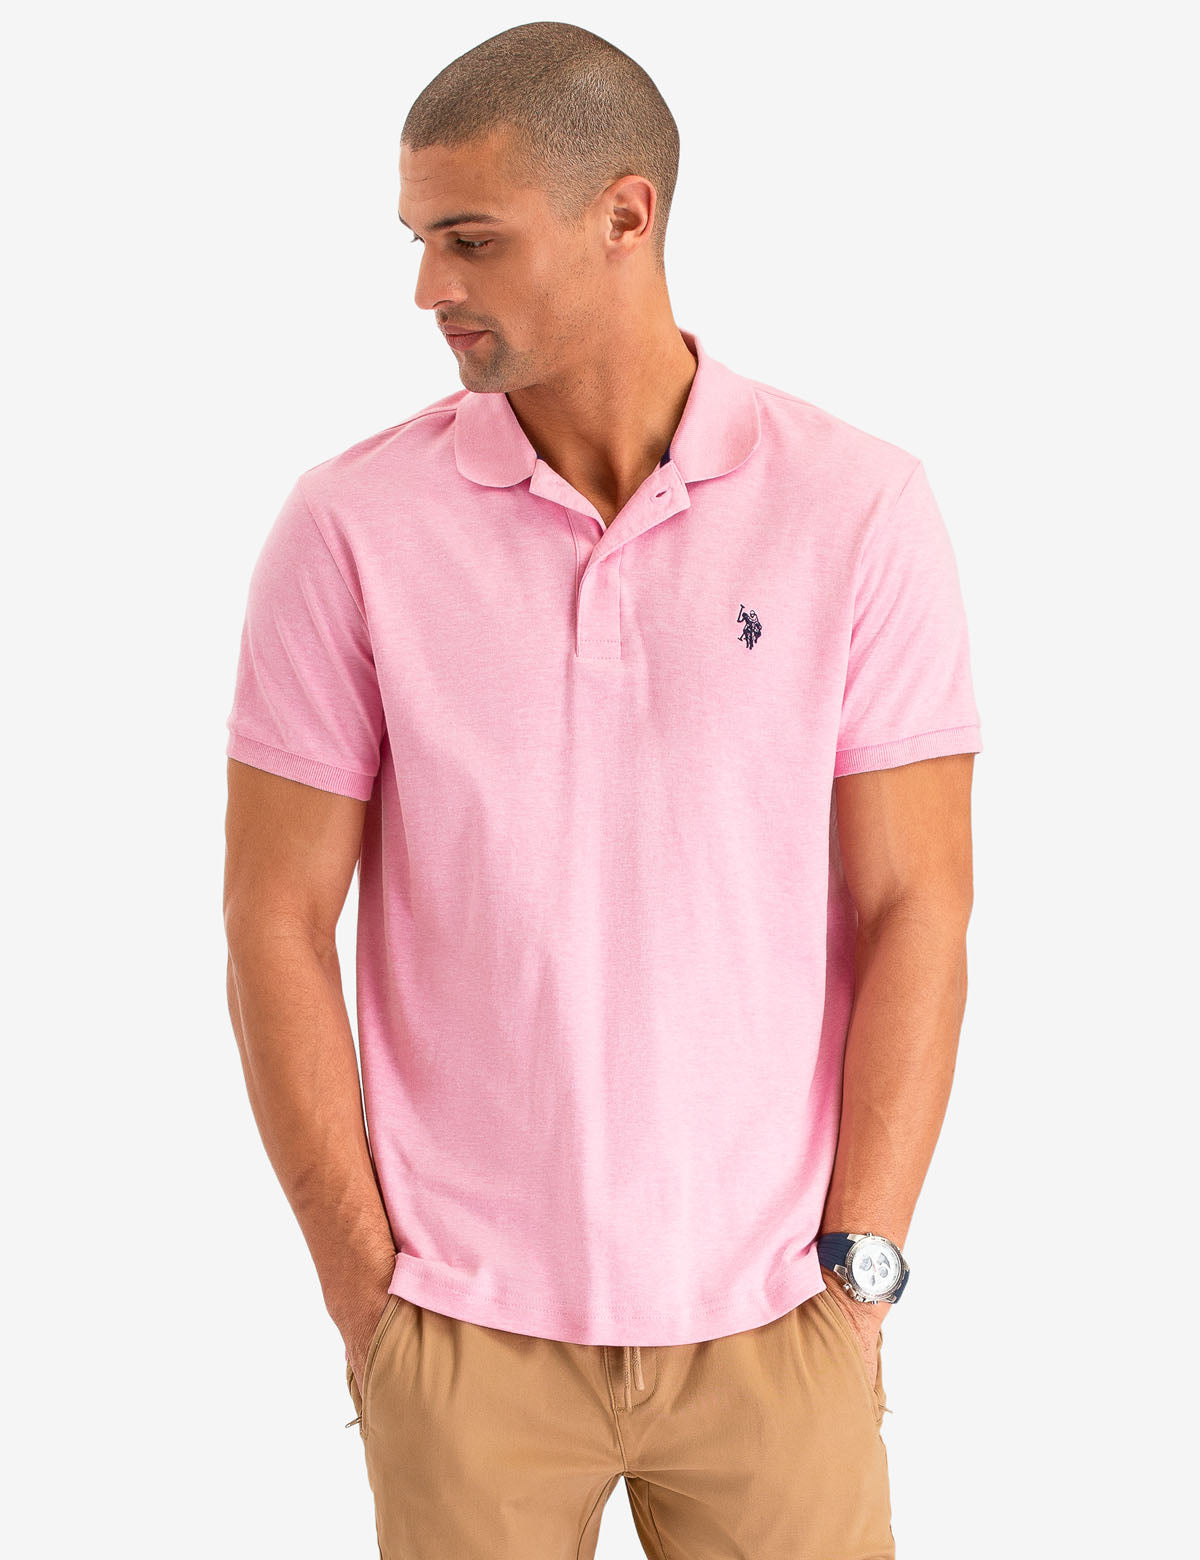 U.S Polo Association Men/'s Short Sleeve Interlock Polo Shirt